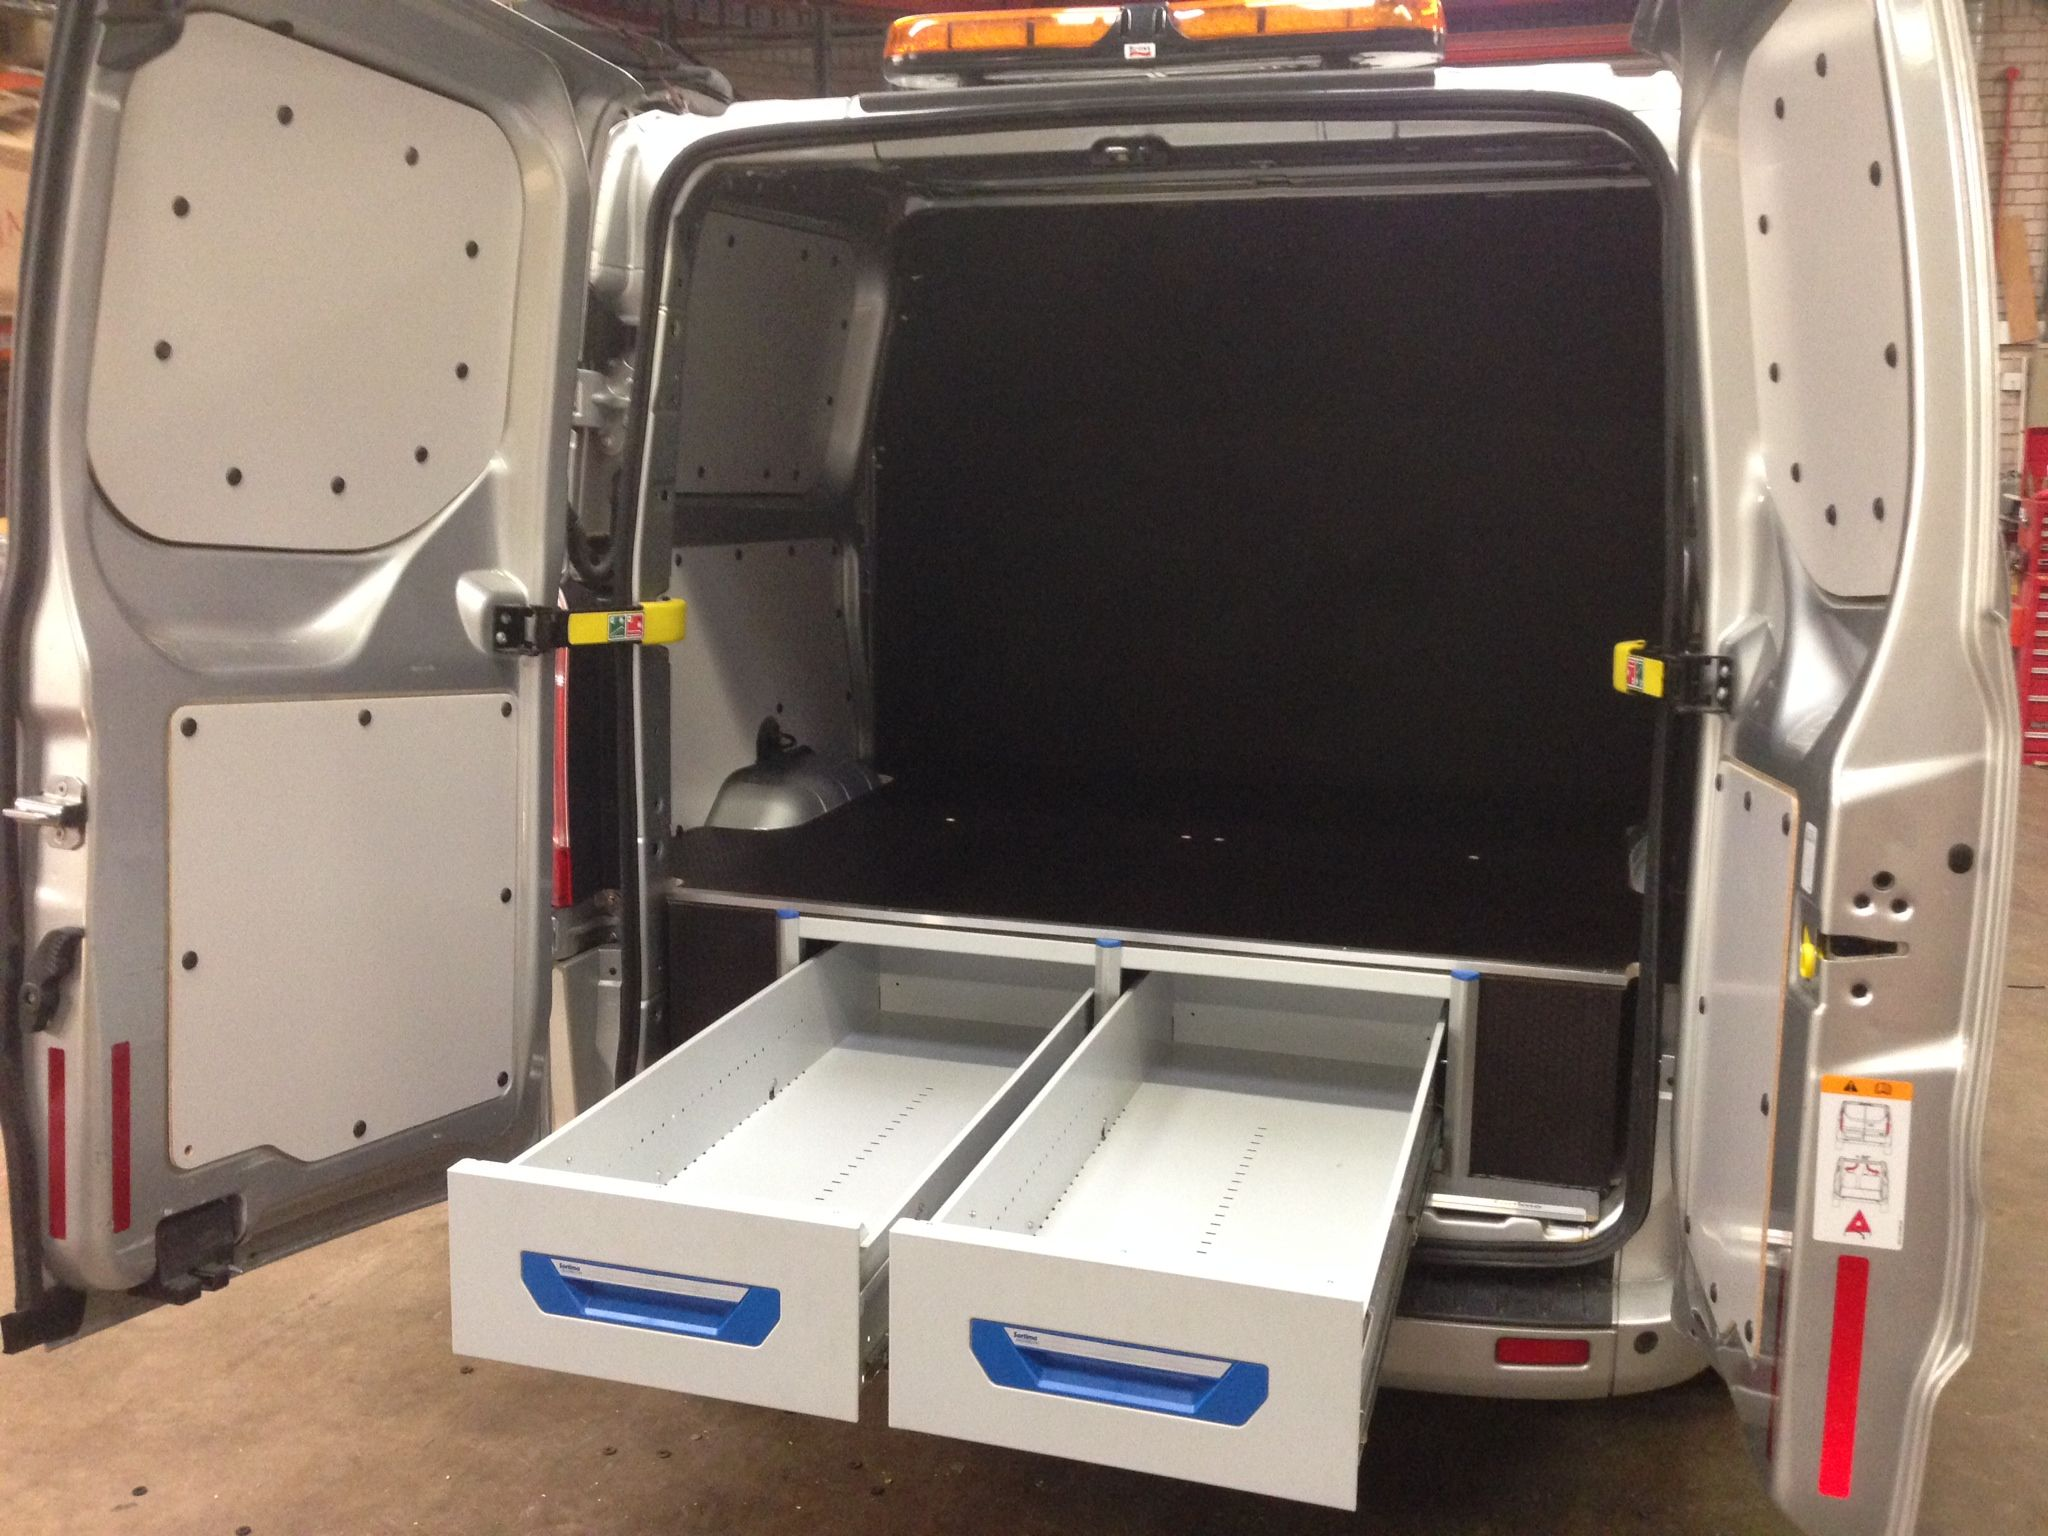 Ford transit custom l2 sortimo xl drawer system and false floor accessible from rear door